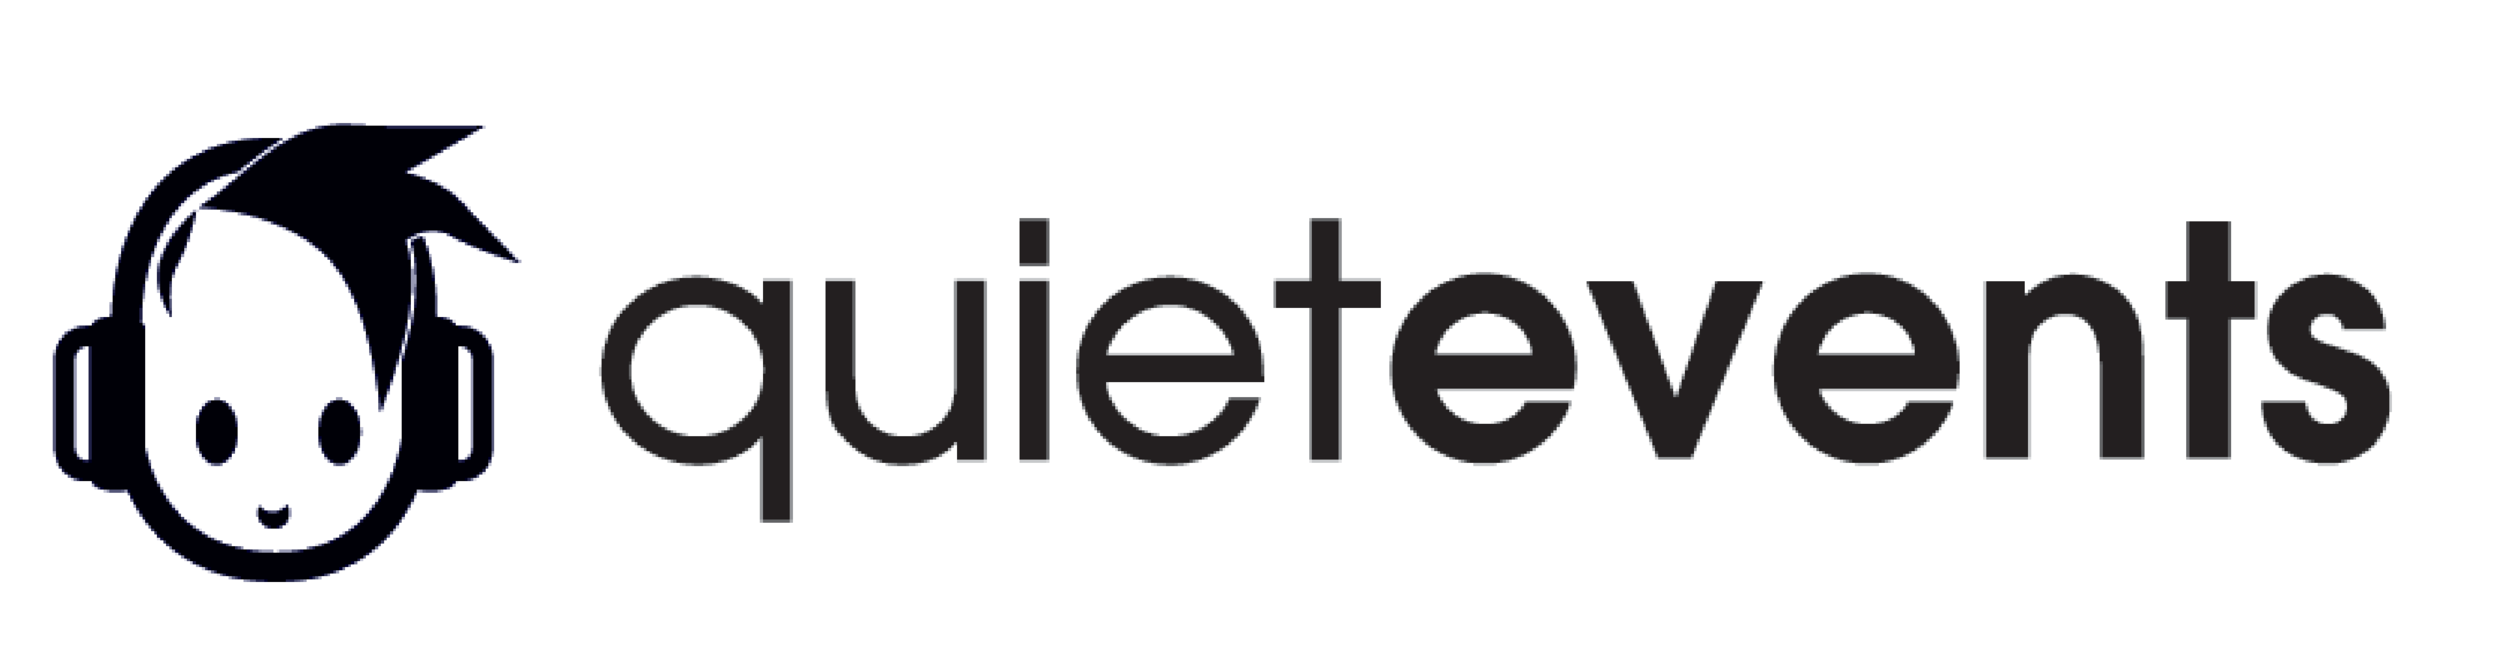 Poweredby-QE-DarkBG-BW-L3840.png